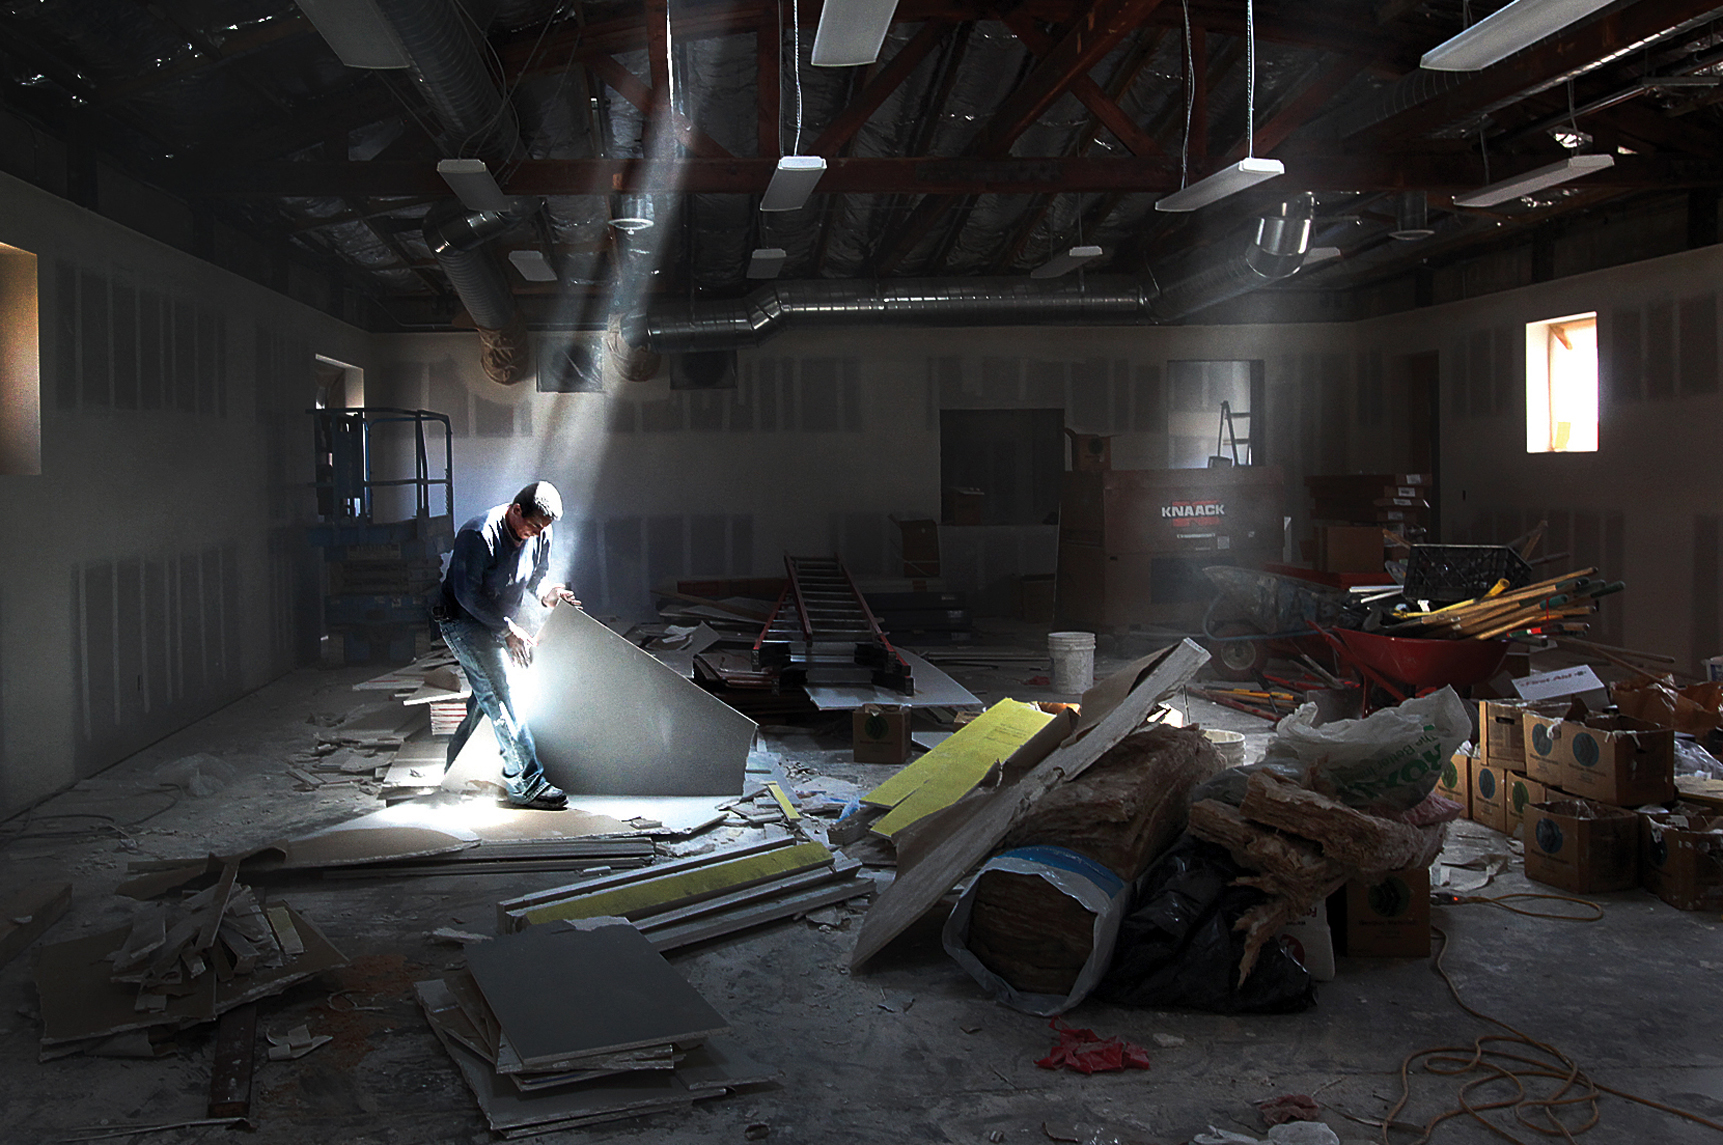 Jose Oriana sorts through left over dry wall inside the Day Worker Center of Mountain View,as major construction nears completion.